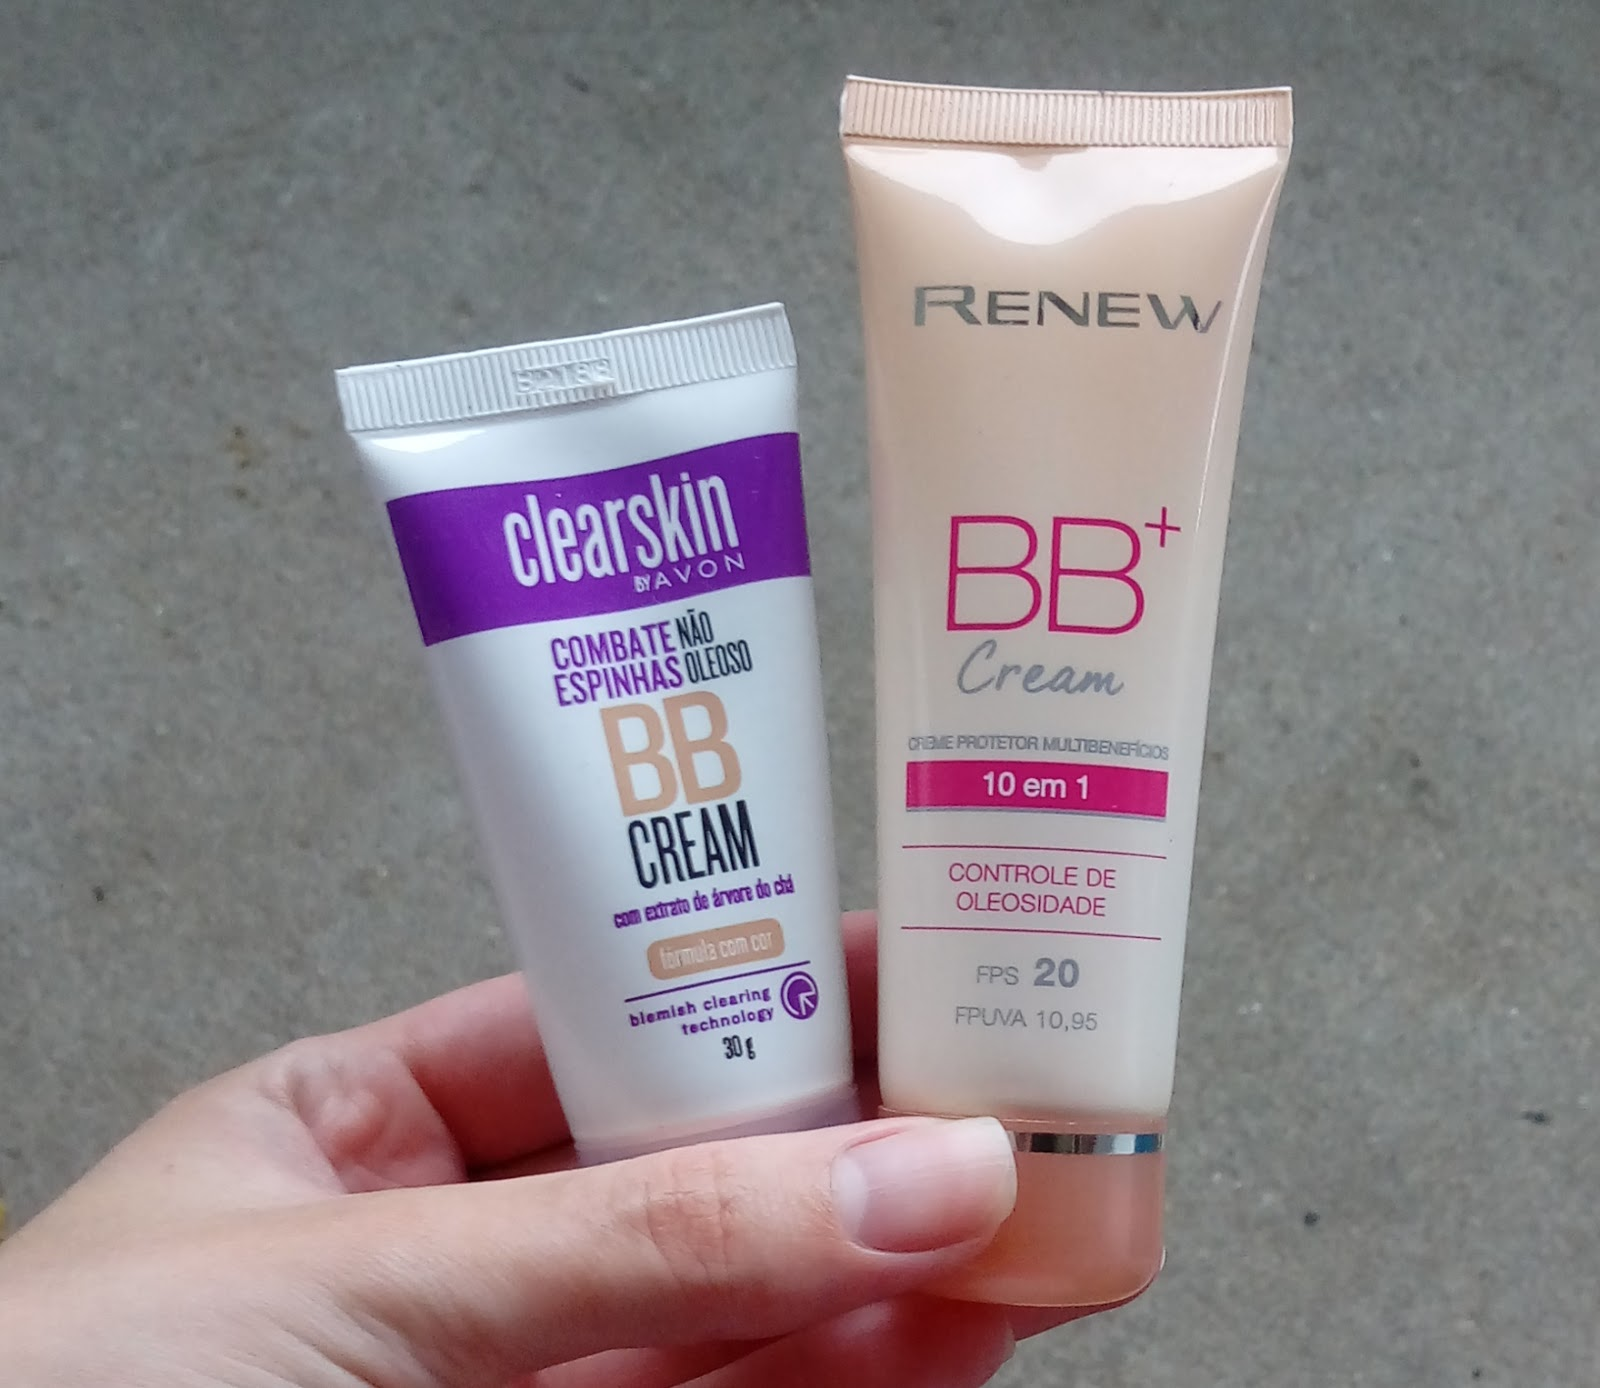 BB Cream Clearskin X BB Cream Renew